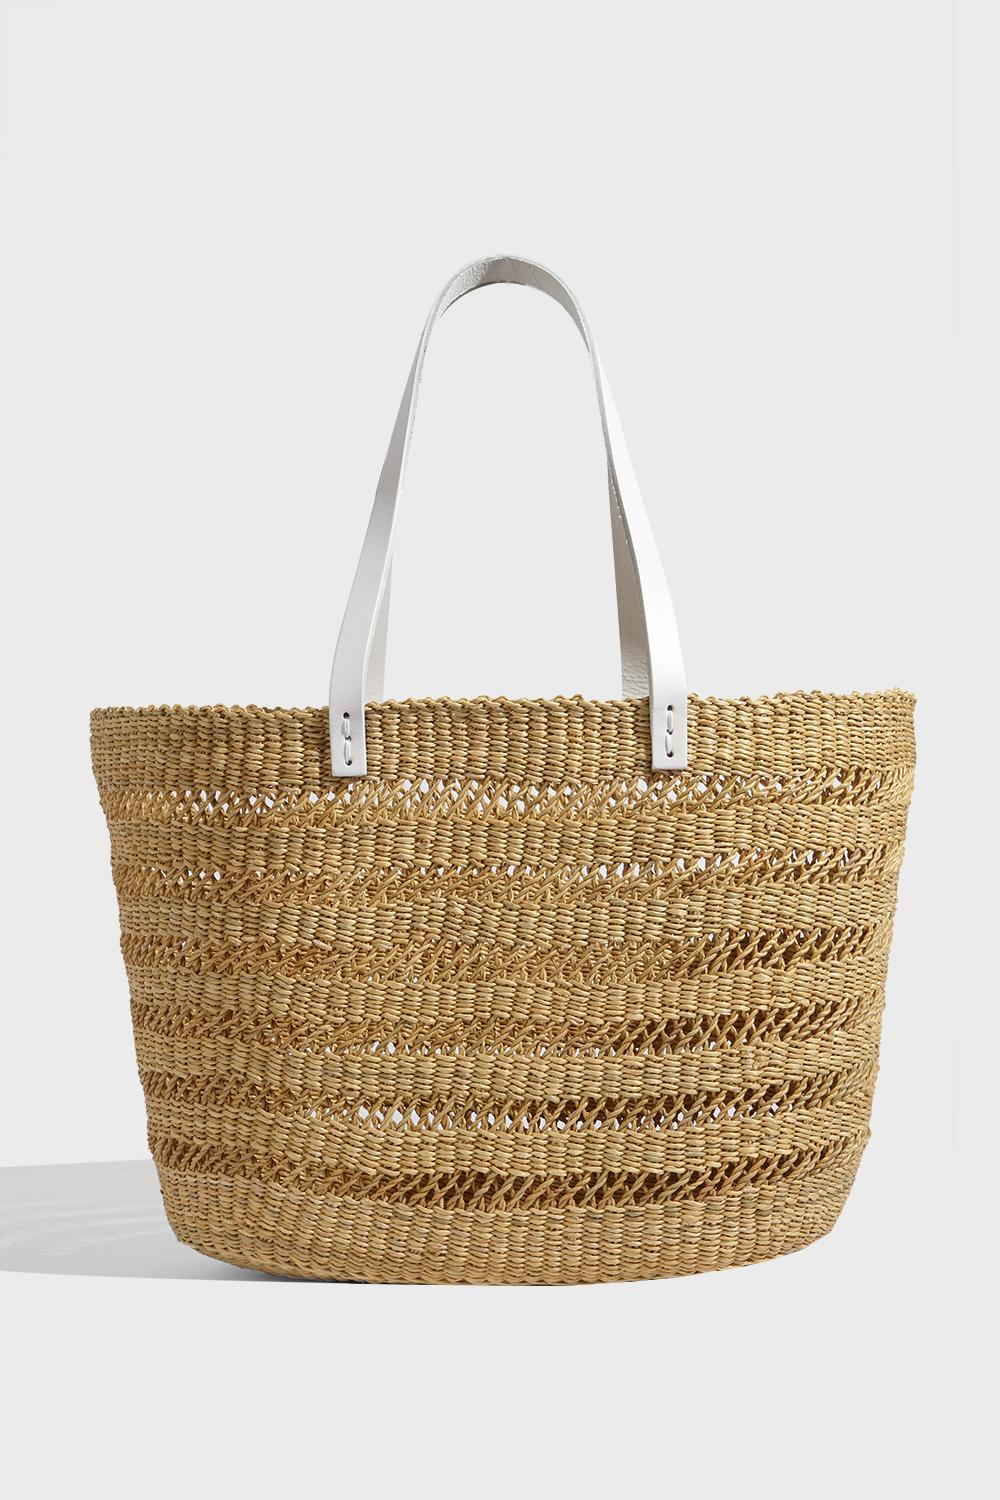 MUUN PAOLA HAND-WOVEN STRAW BAG, SIZE OS, WOMEN, BEIGE